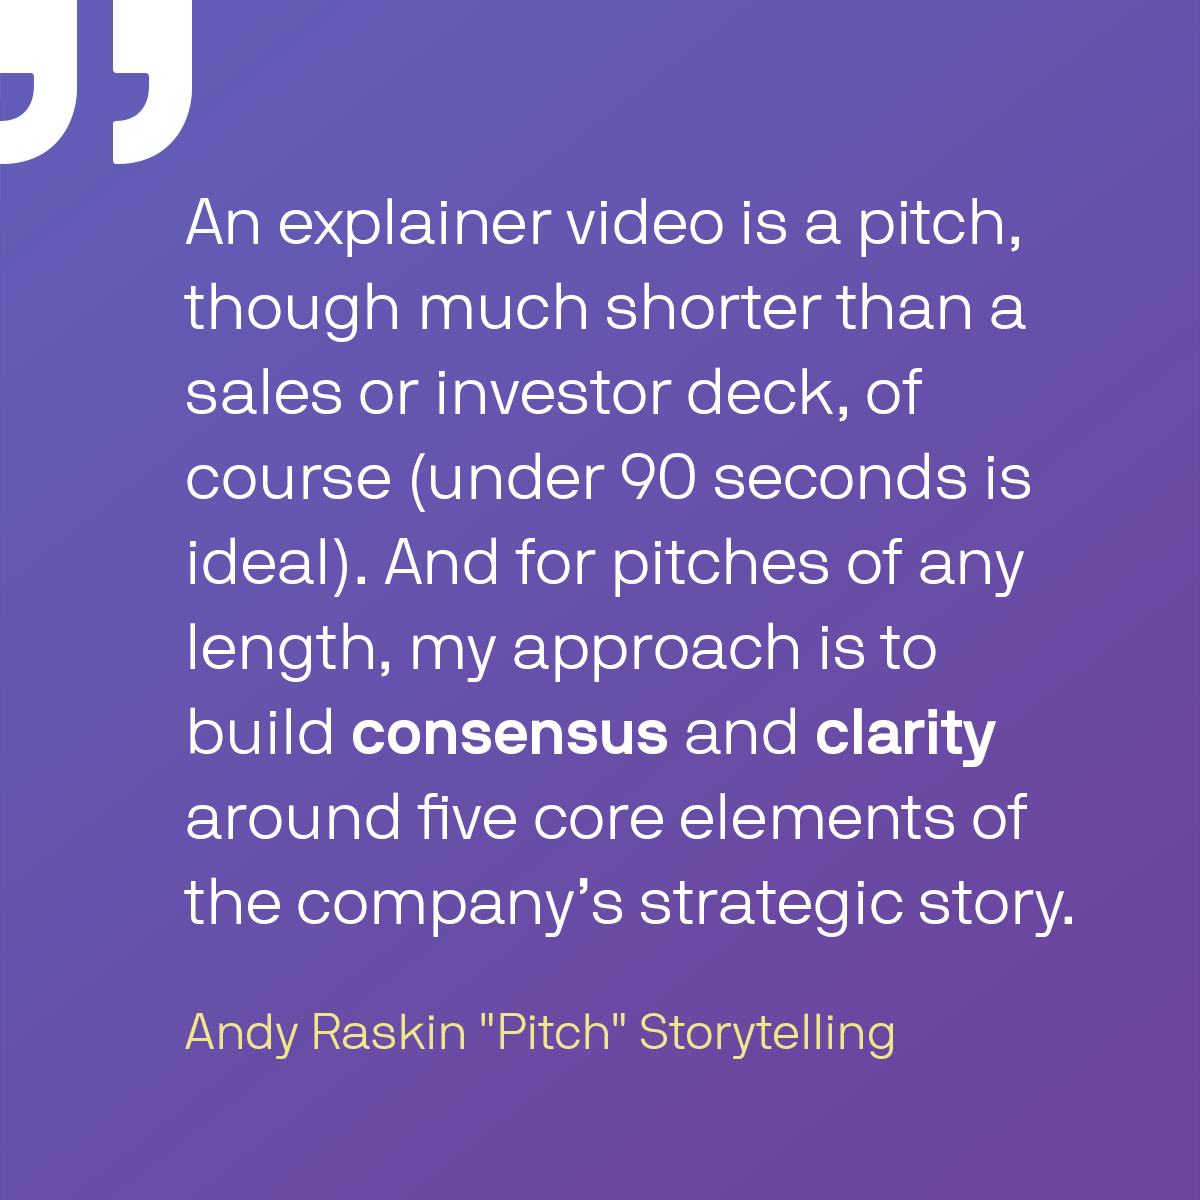 Quote from Andy Raskin on Pitch Storytelling